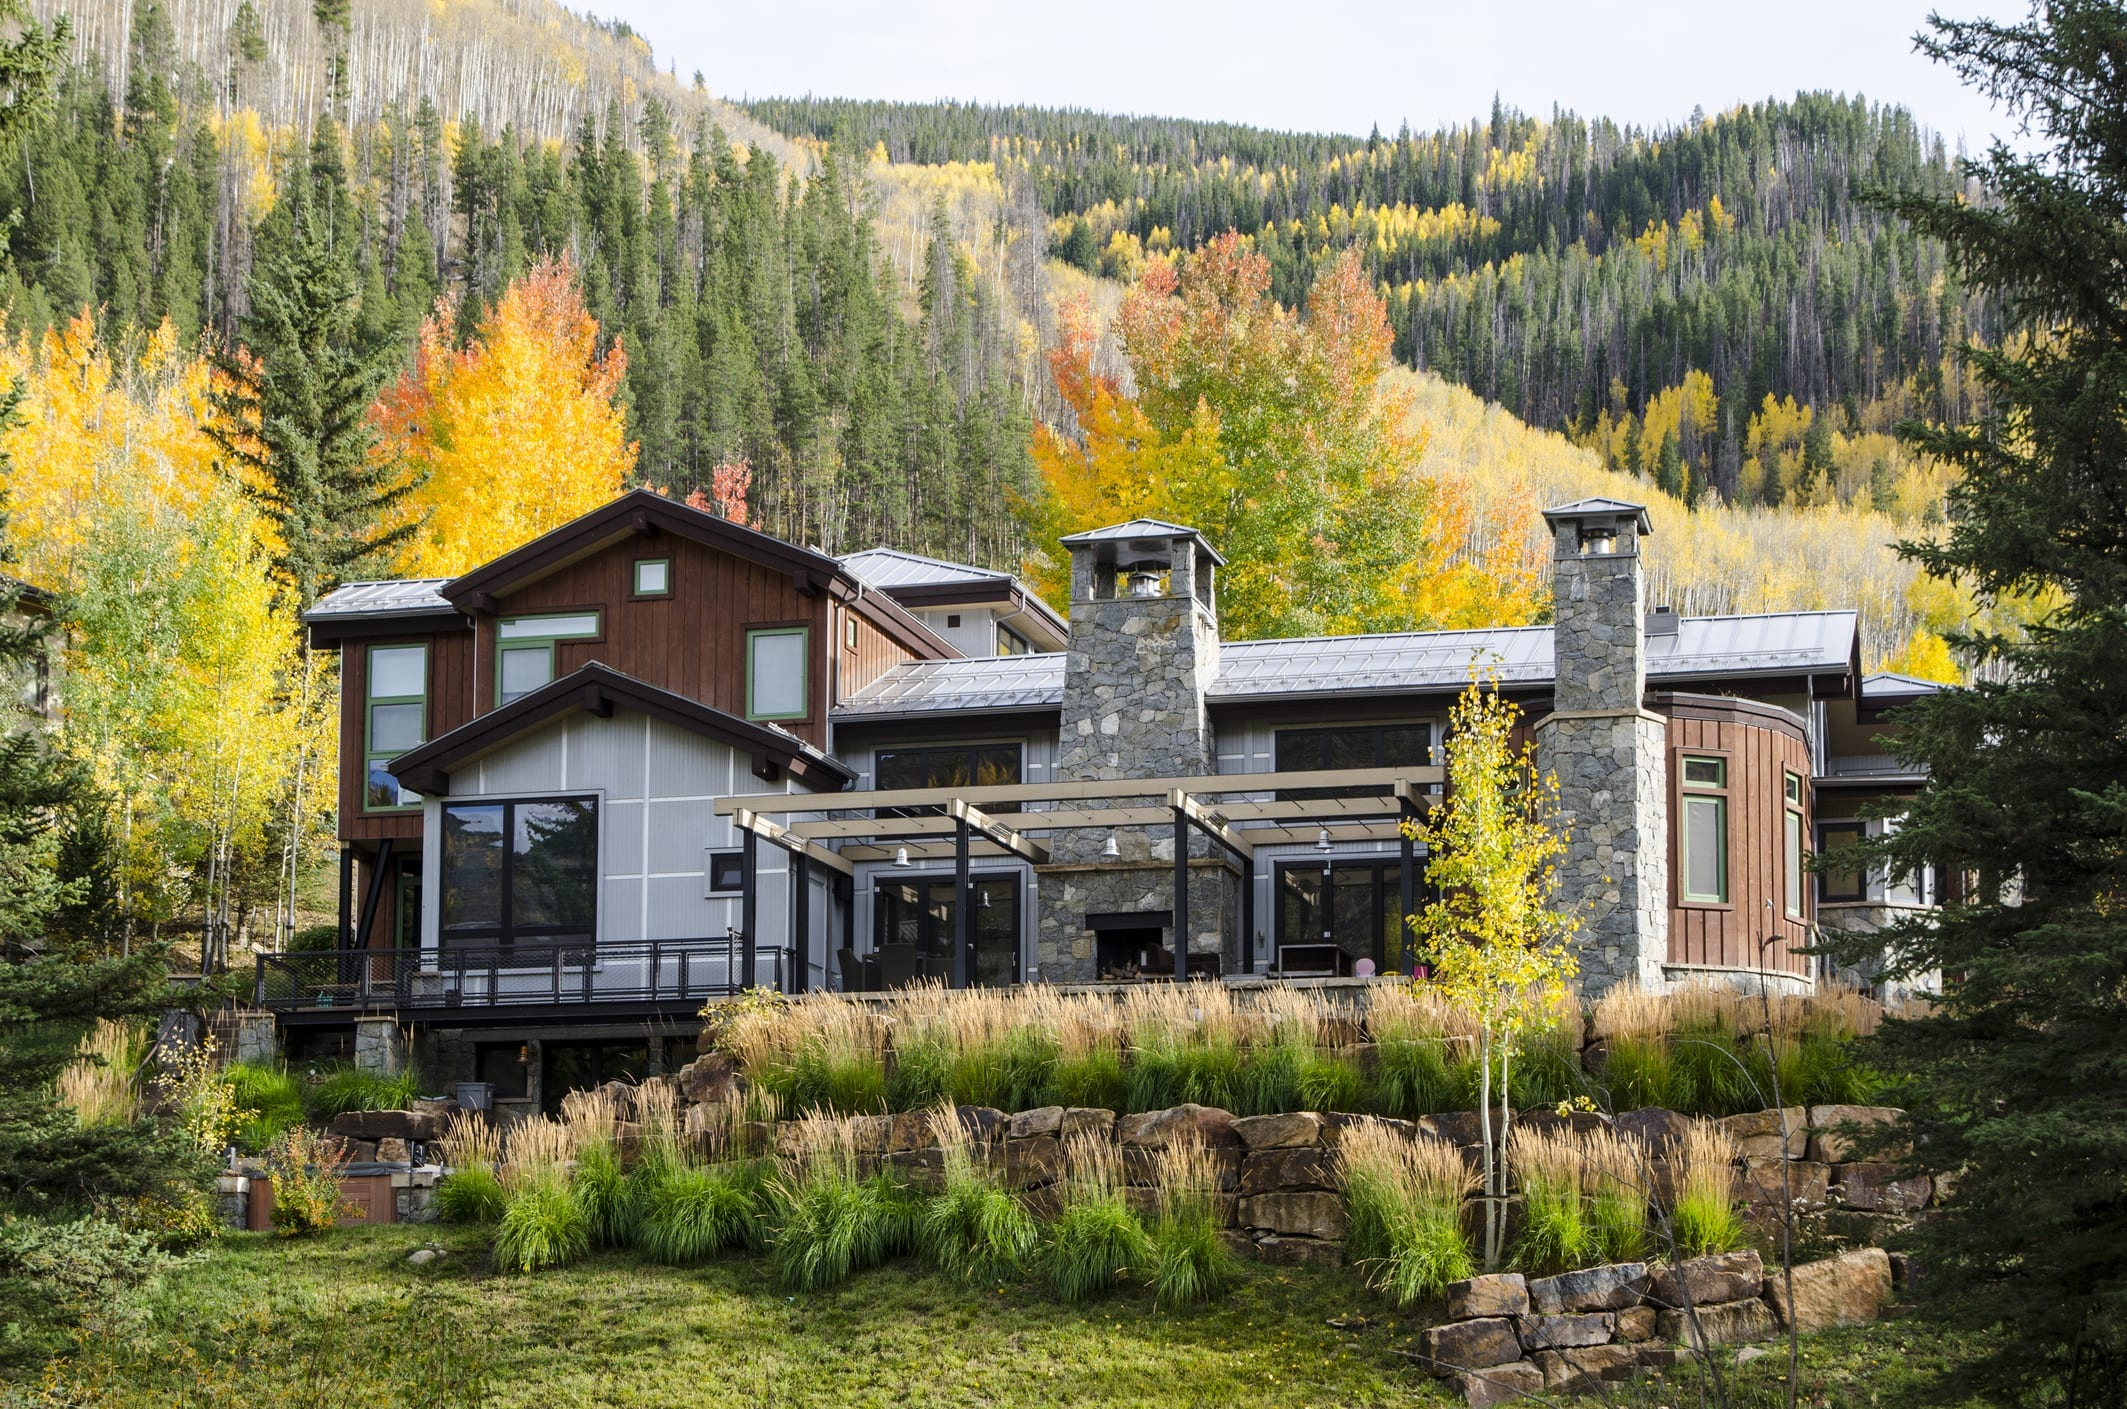 Vail, Colorado, USA - October 1, 2015: Multi-million dollar home has been built along the Gore River in Vail, Colorado. The village was established and built as the base village to Vail Ski Resort, with which it was originally conceived and is the third largest ski mountain in North America. Vail attracts wealthy visitors, many of whom, who build and purchase vacation homes and condominiums near the ski slopes. Each Autumn, the Colorado Rocky Mountains create a dazzling and colorful display as the Aspens turn a brilliant yellow and glow against the mountains. In addition, their tall, vertical, trunks with white bark create a repetitive pattern under the foliage.